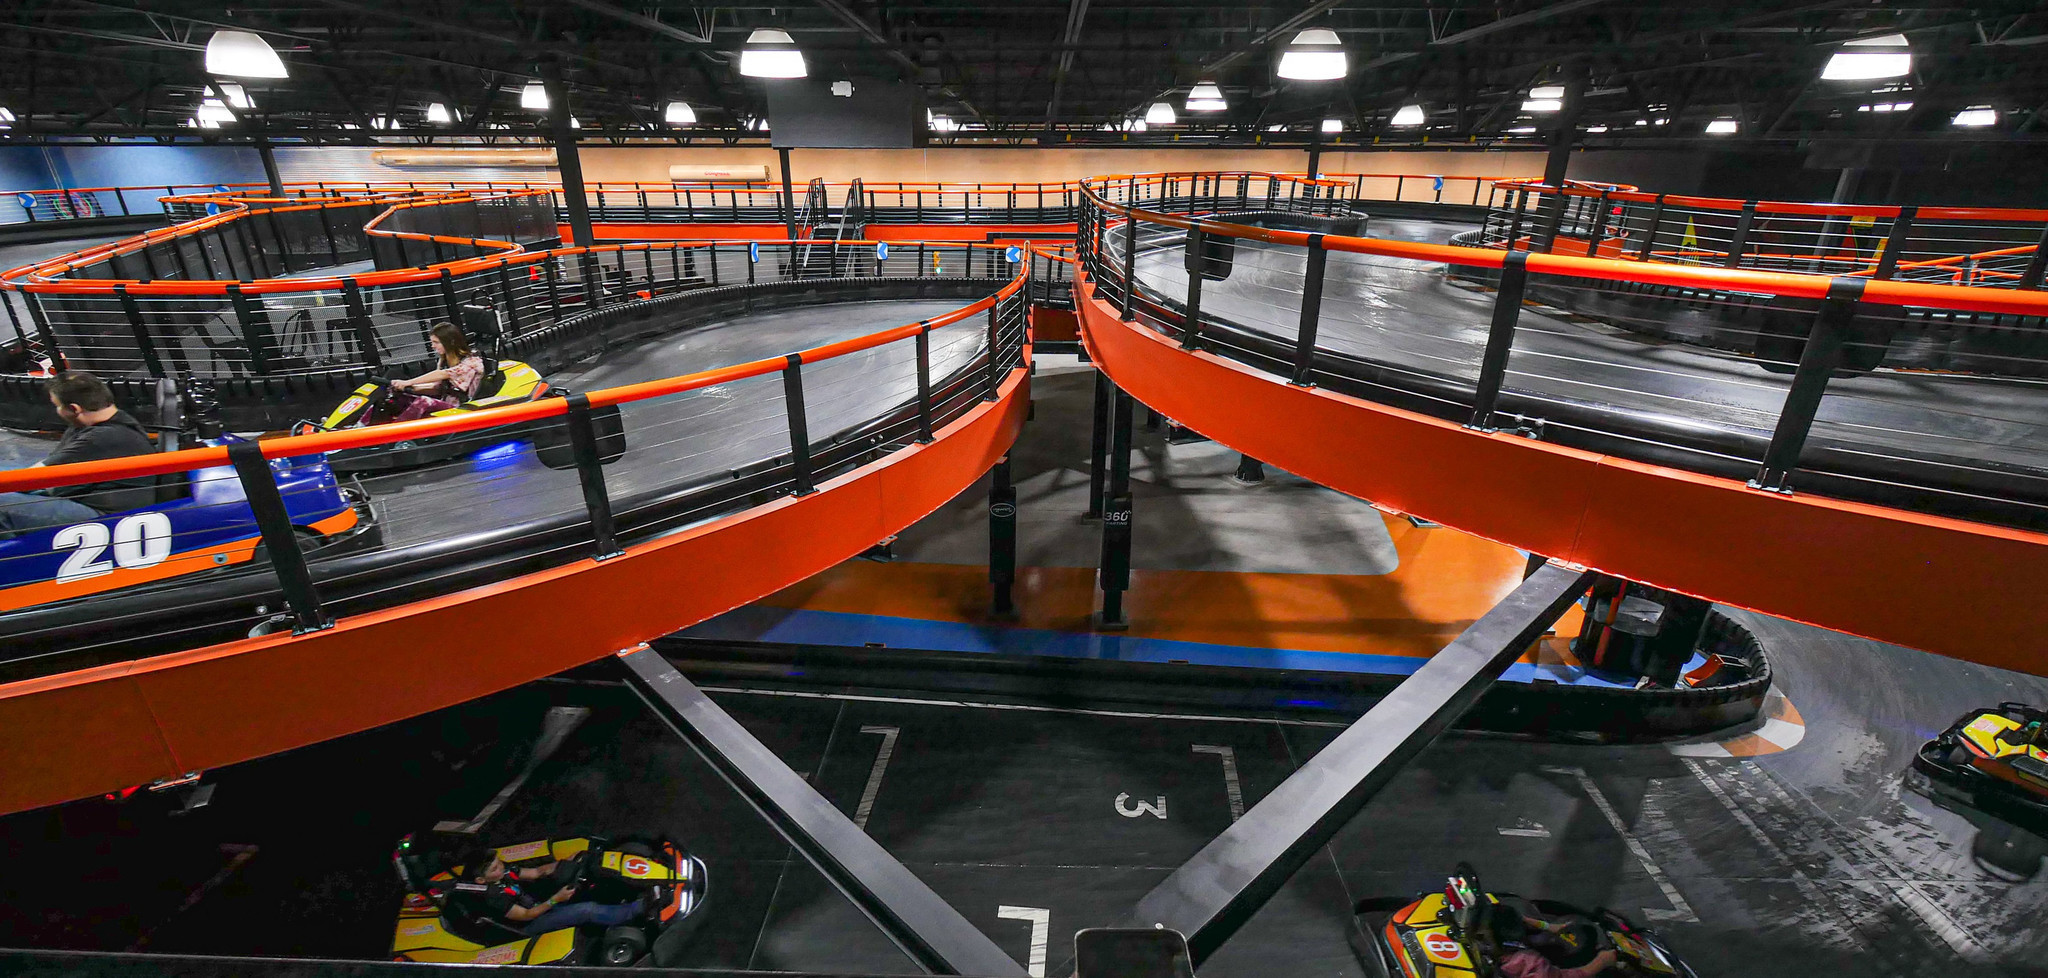 Indoor Adventure Park With Go Karts Trampolines Climbing Walls And More Coming Soon To Former Bon Ton Site In Lehigh County The Morning Call